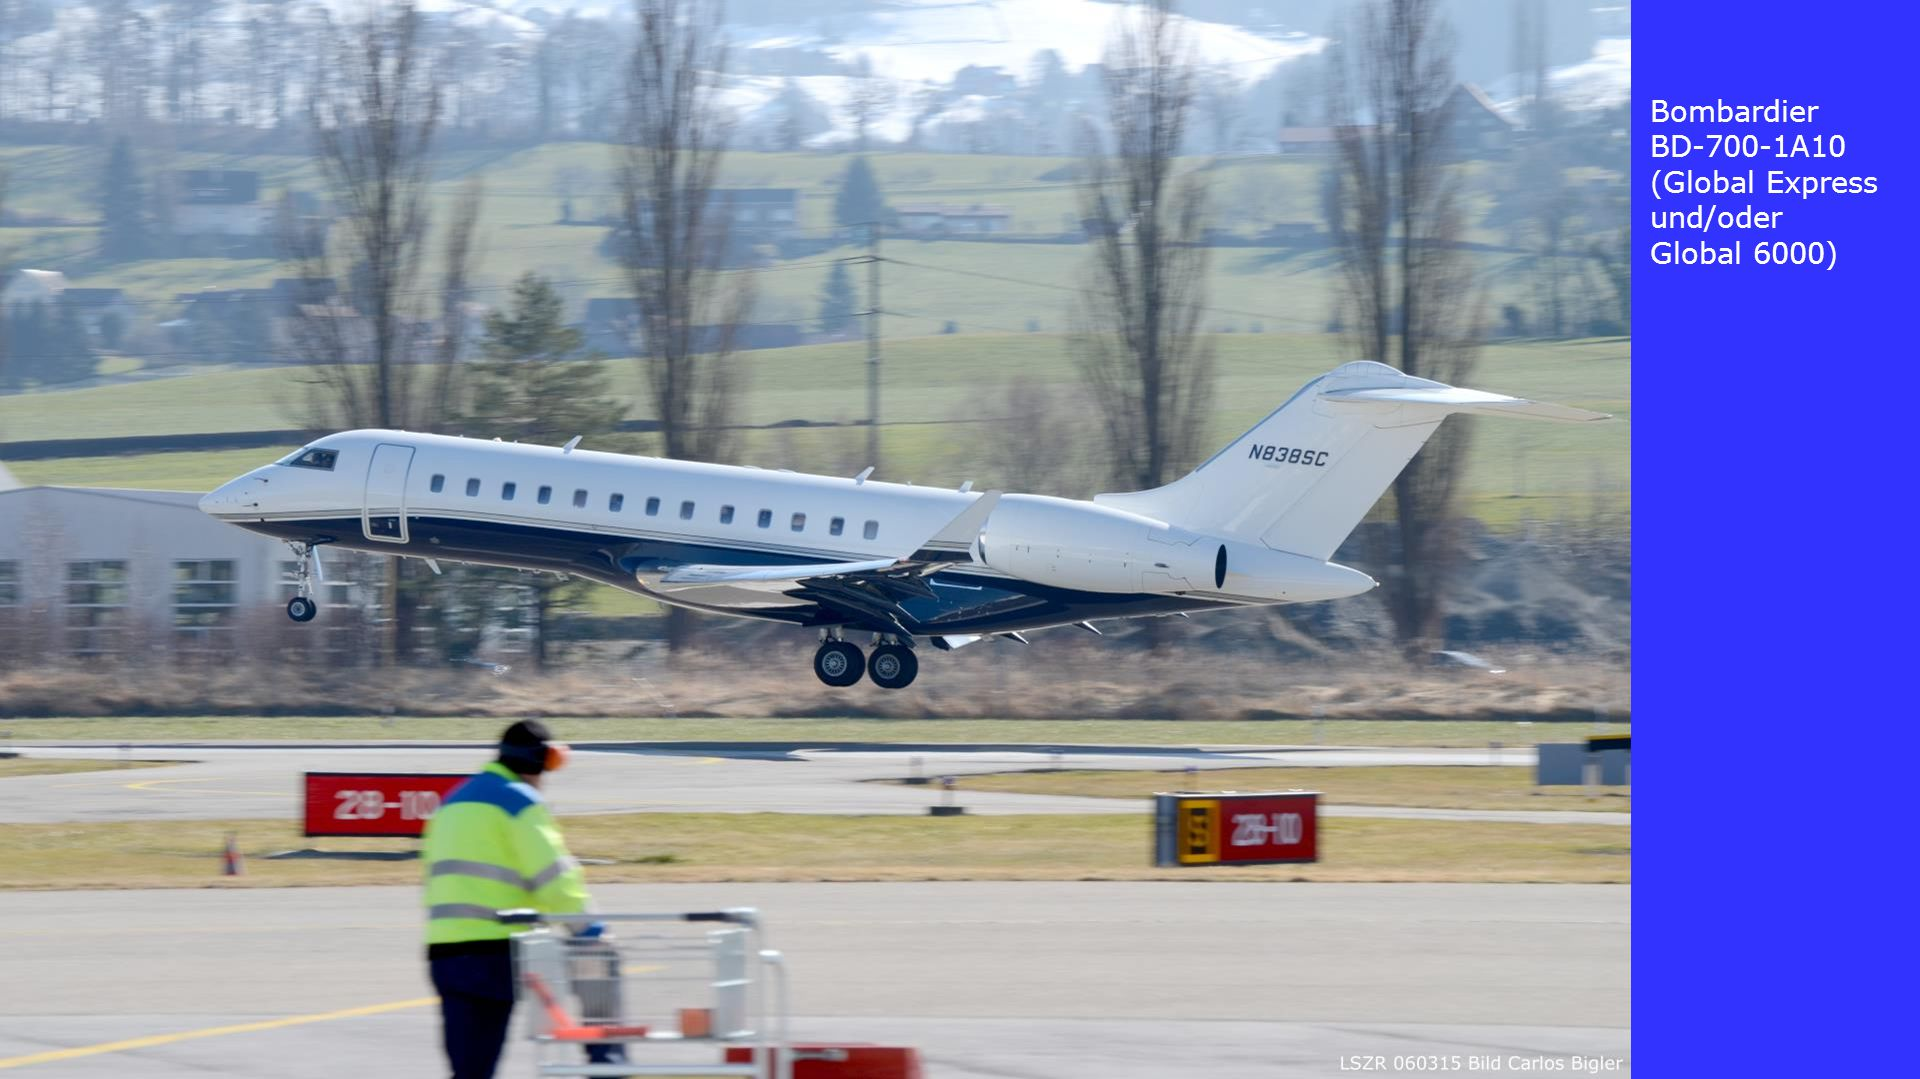 Bombardier BD-700-1A10 (Global Express und/oder Global 6000)